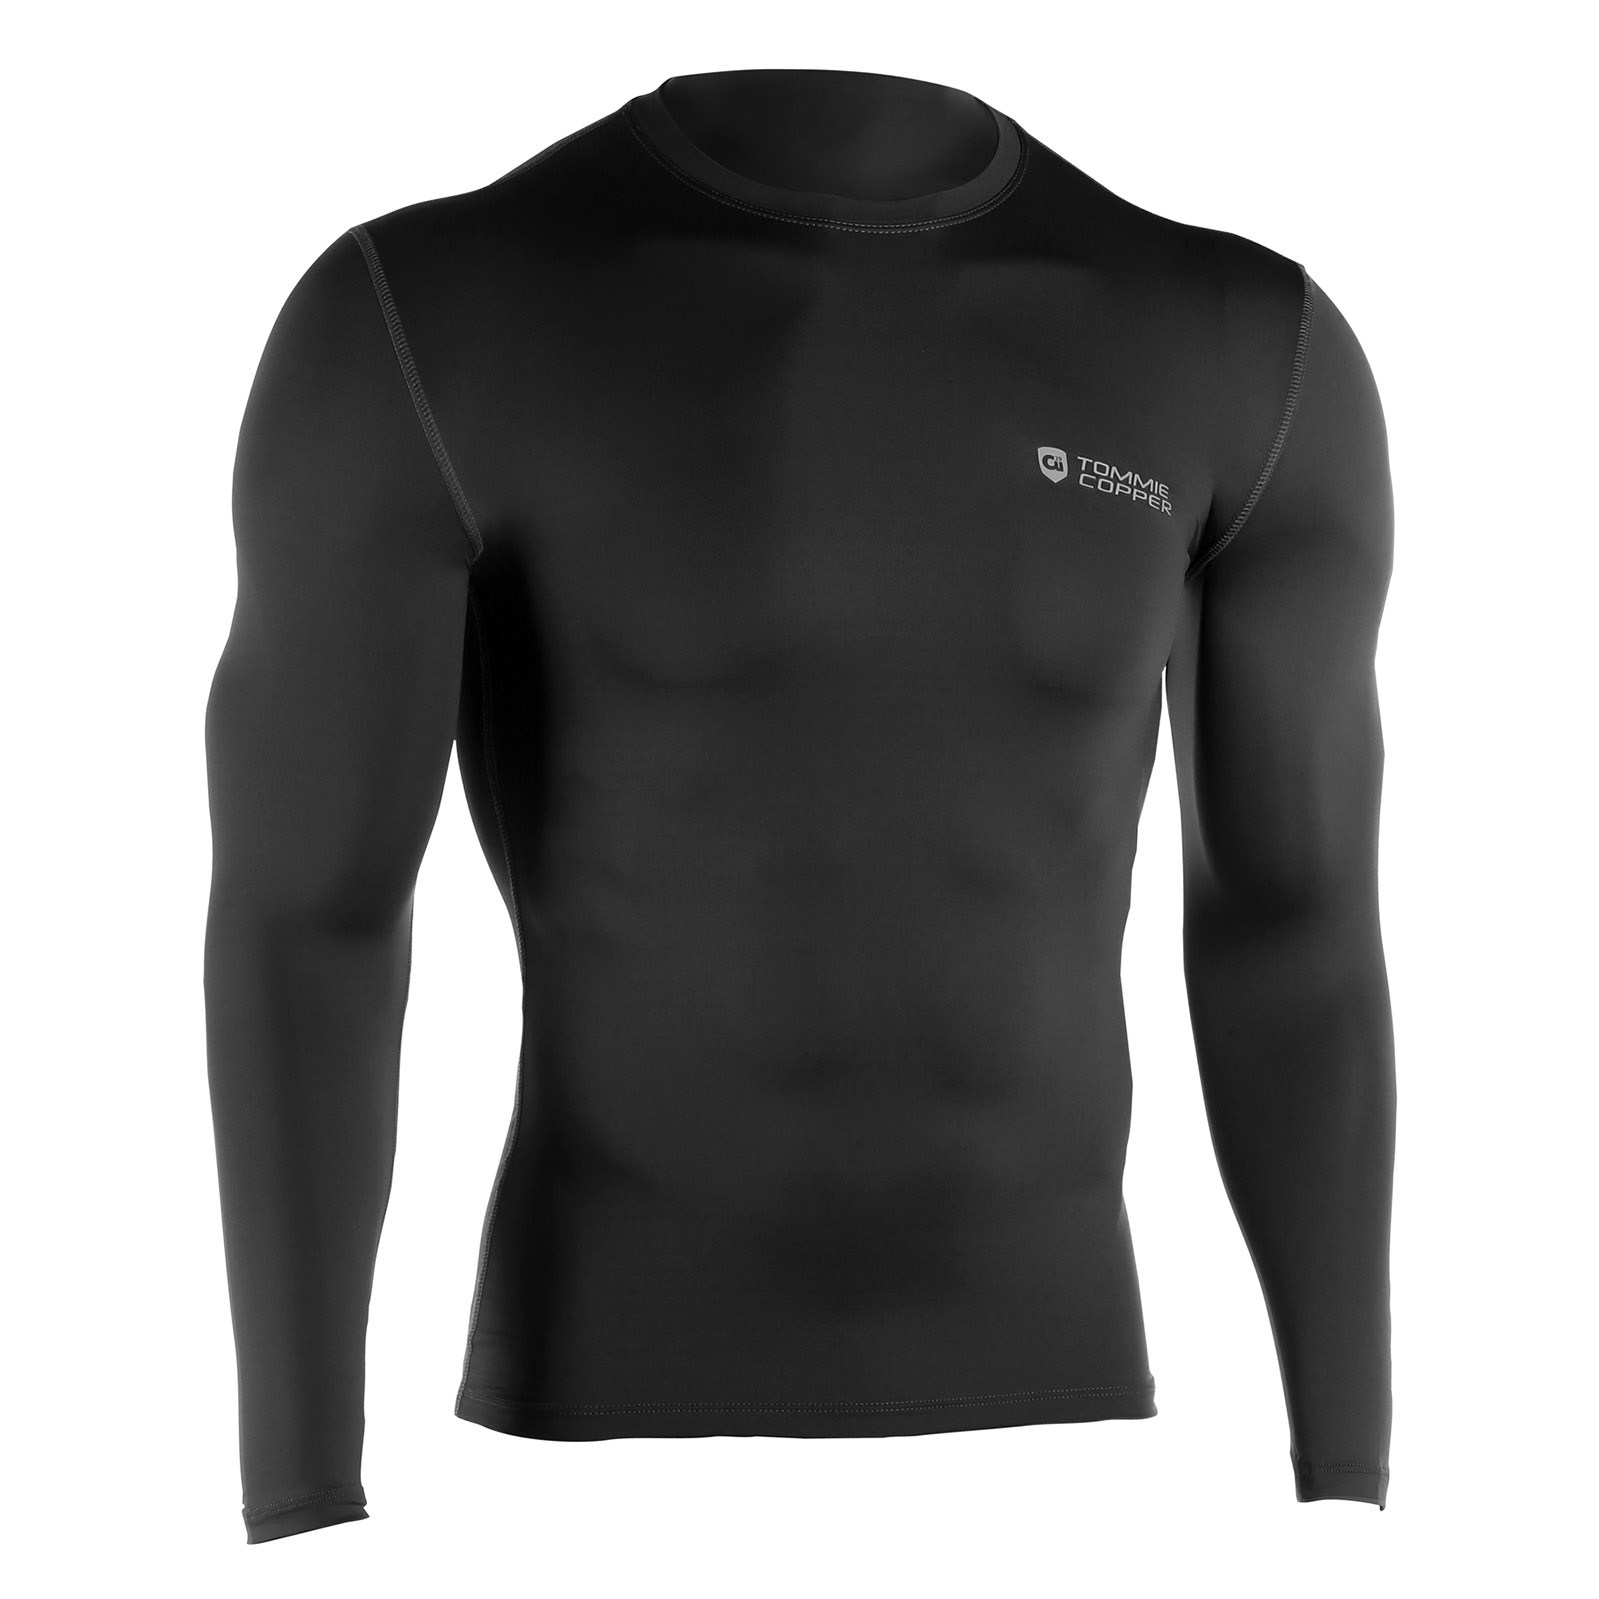 Tommie Copper Men s Long Sleeve Compression Shirt